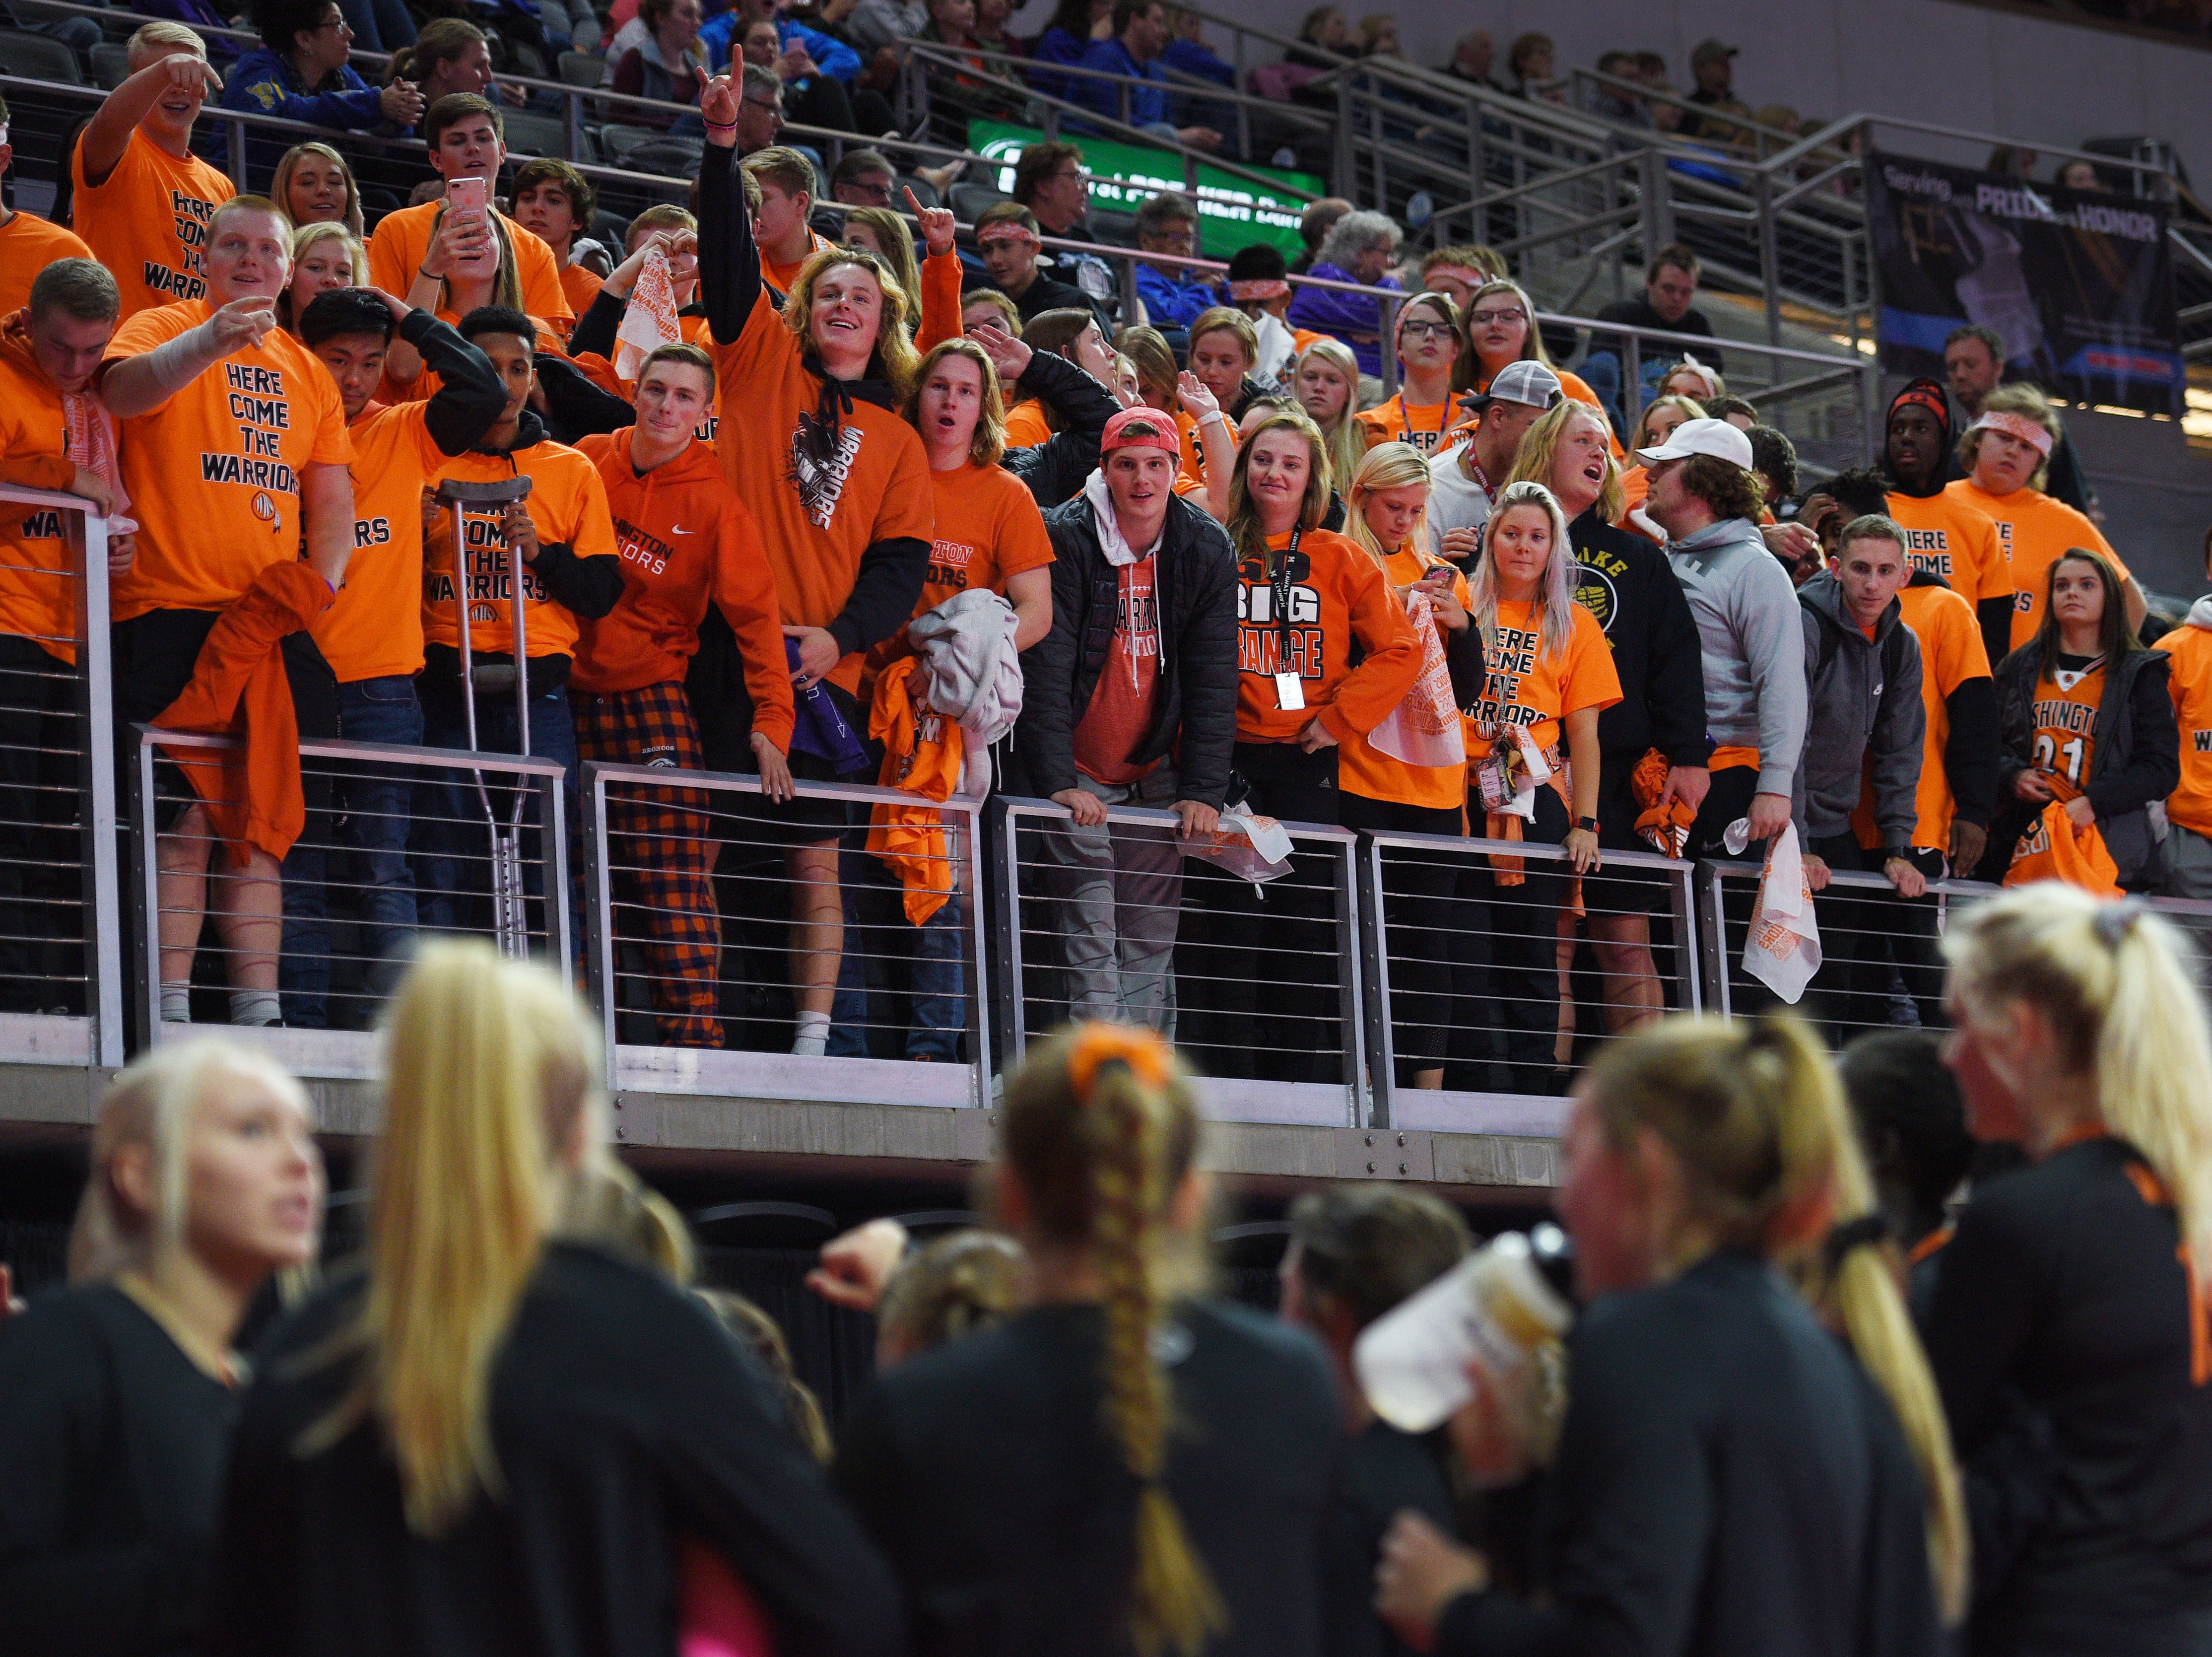 Washington's student section cheers at the players after their win against O'Gorman during the semifinals Friday, Nov. 16, at the Denny Sanford Premier Center in Sioux Falls.